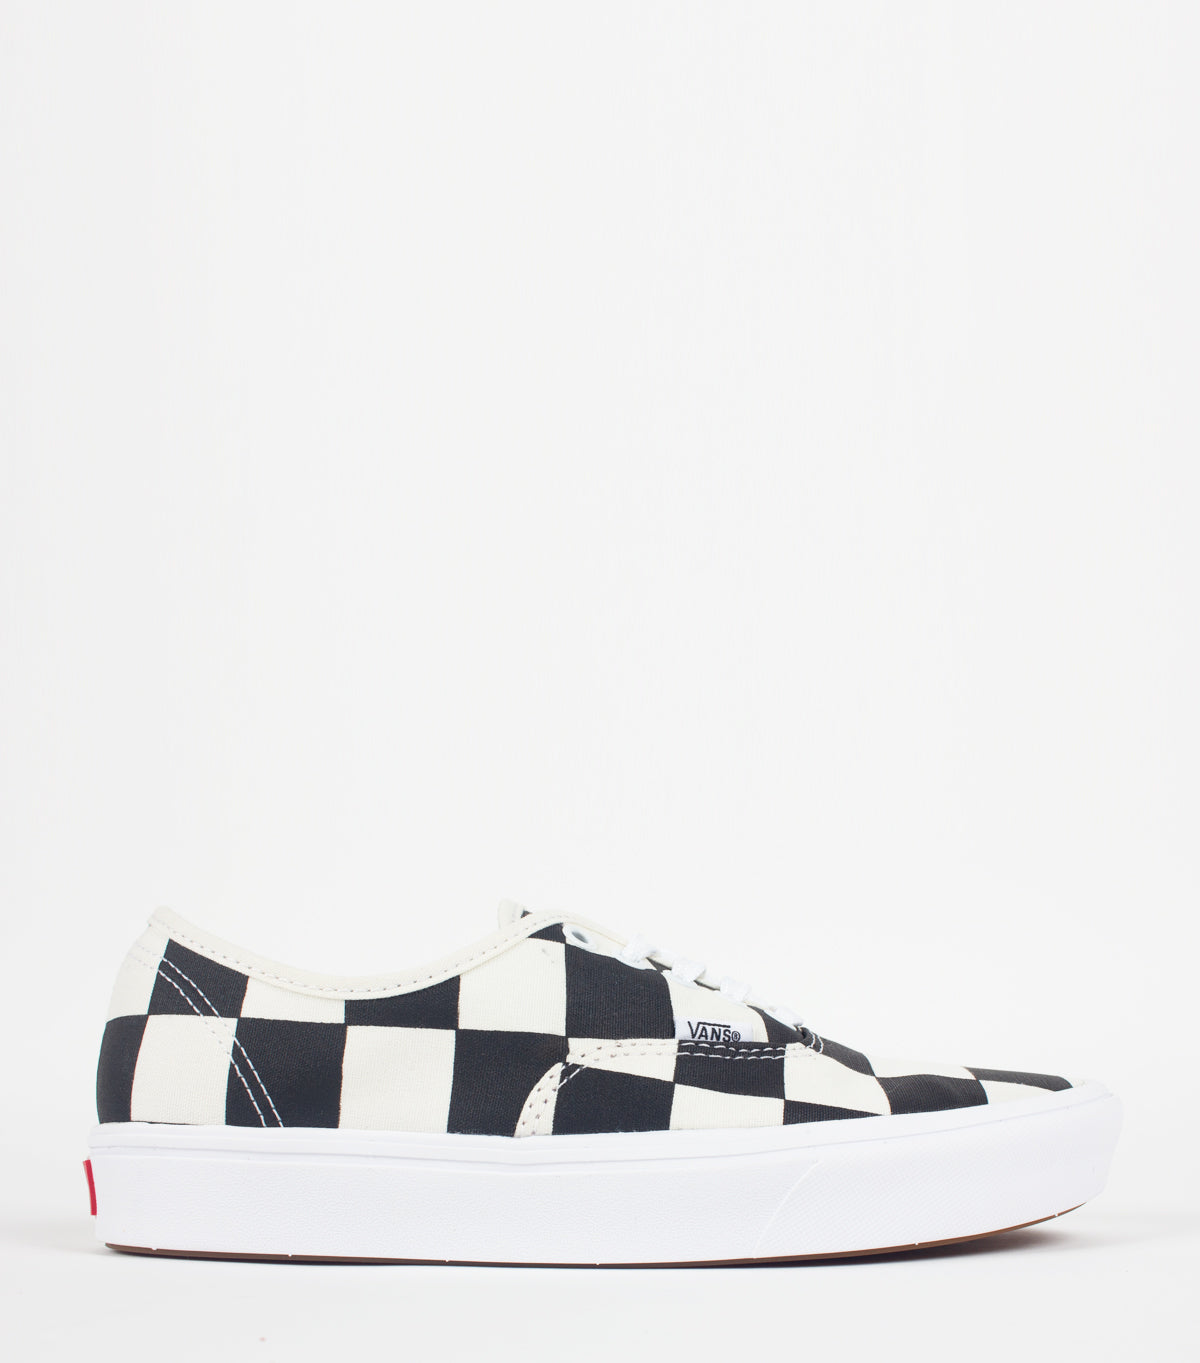 Vans Comfycush Half Big Checker Authentic Black Red | somewhereofficial.